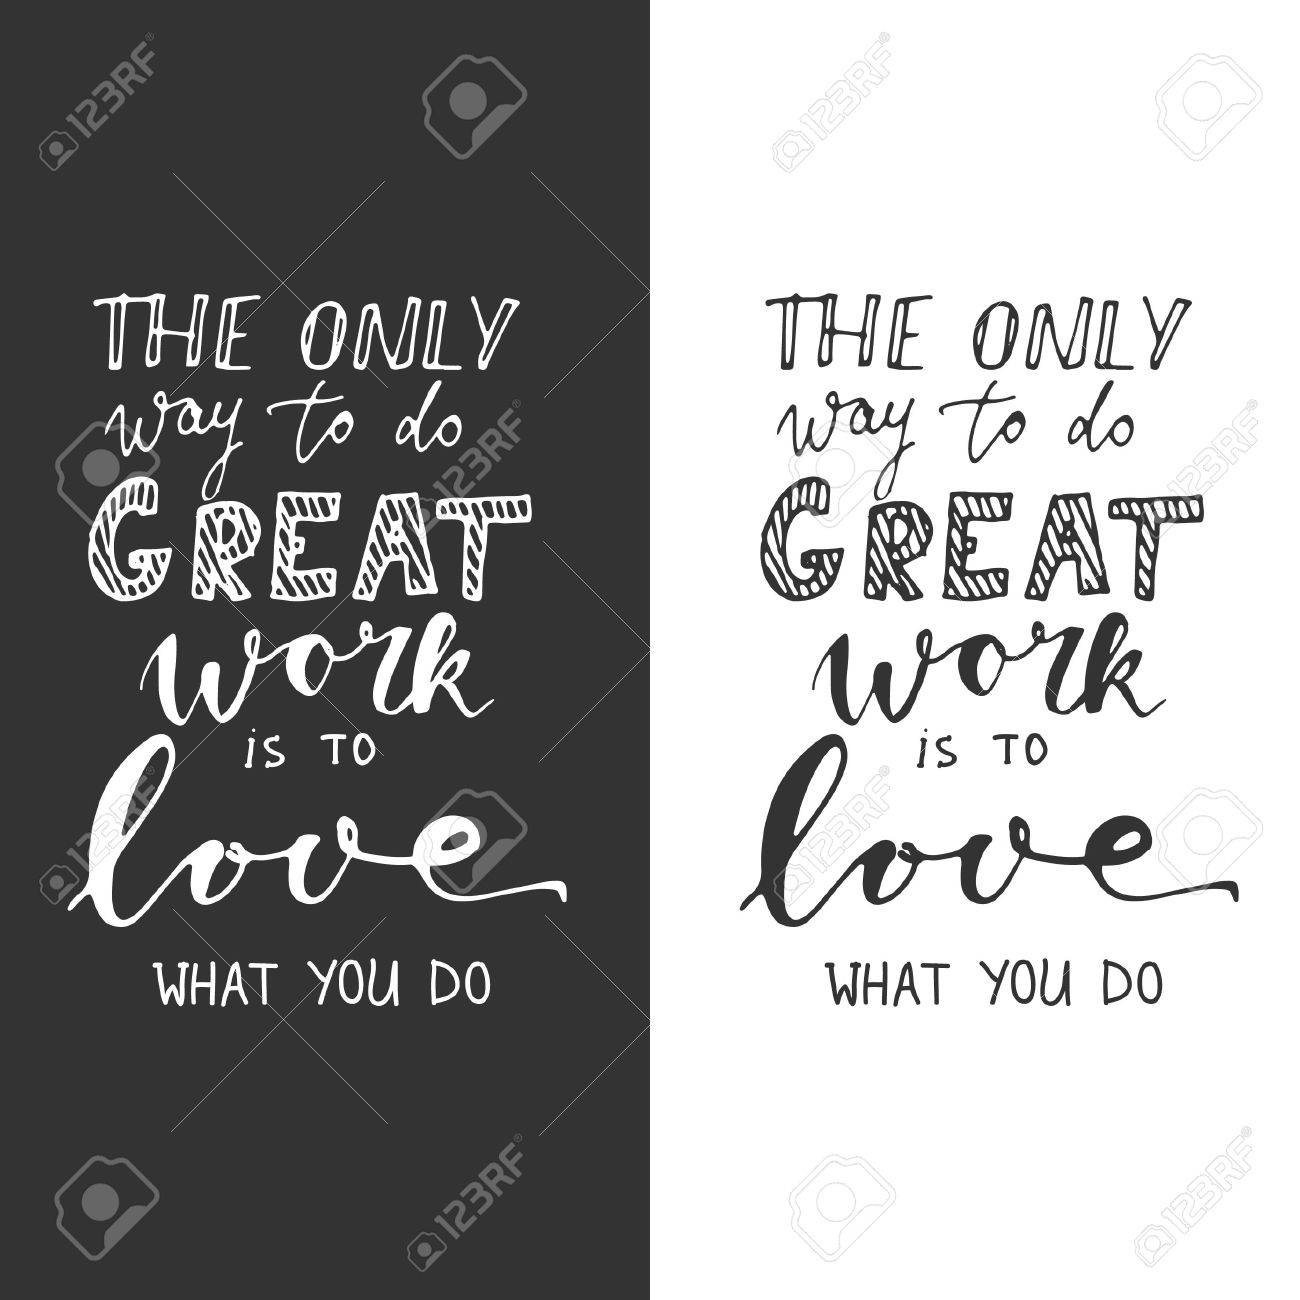 The Only Way To Do Great Work Is To Love What You Do. Motivational Quote